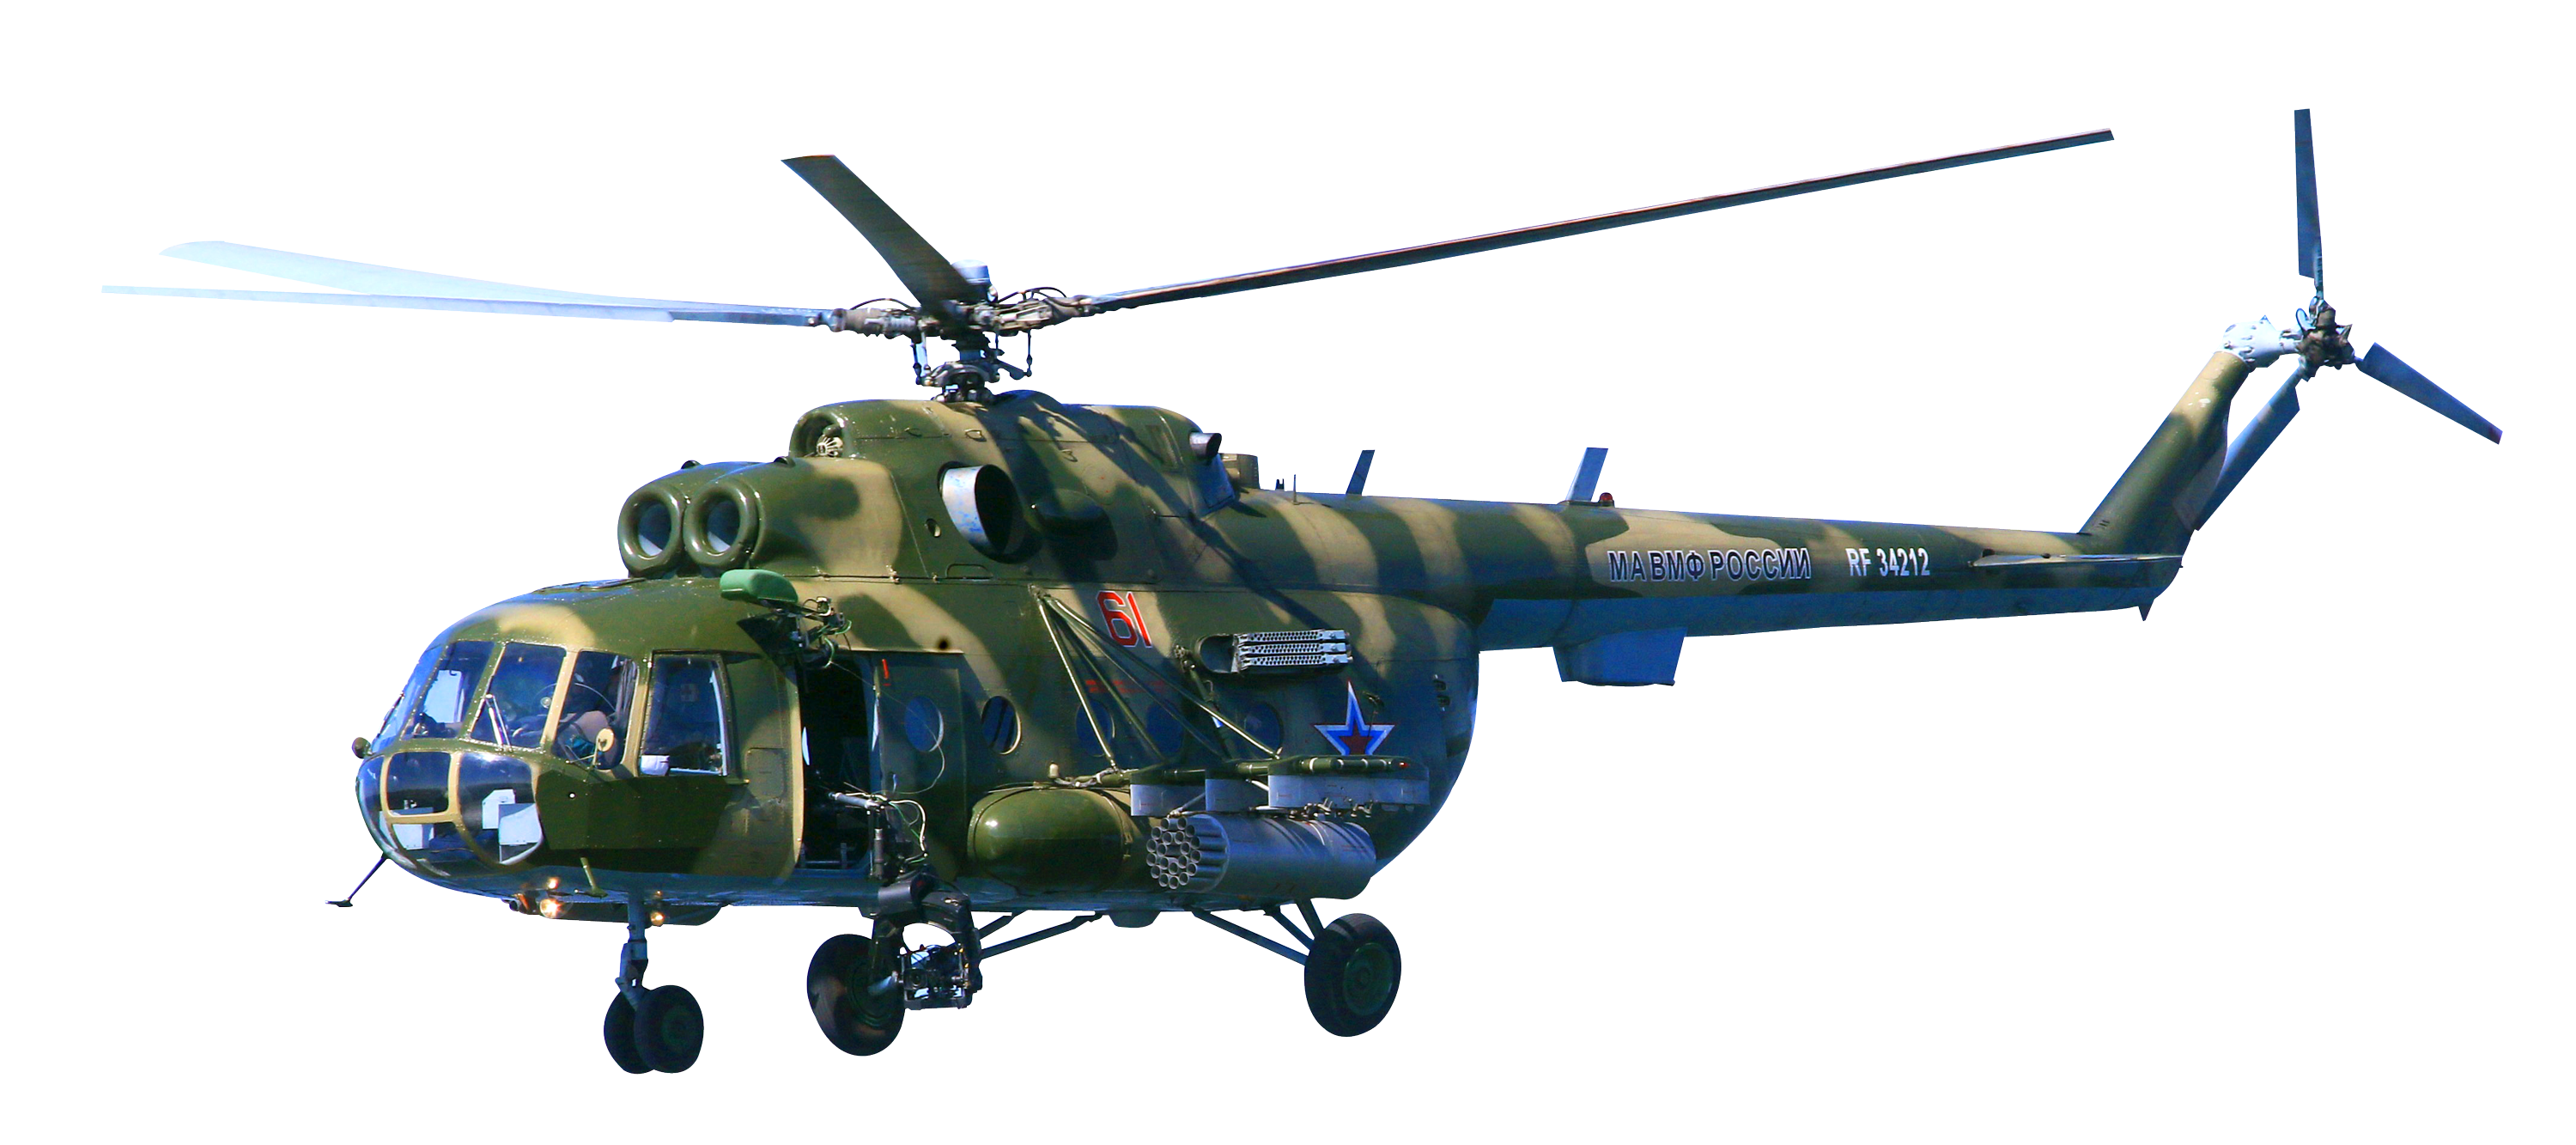 Helicopter clipart war helicopter. Military png image purepng